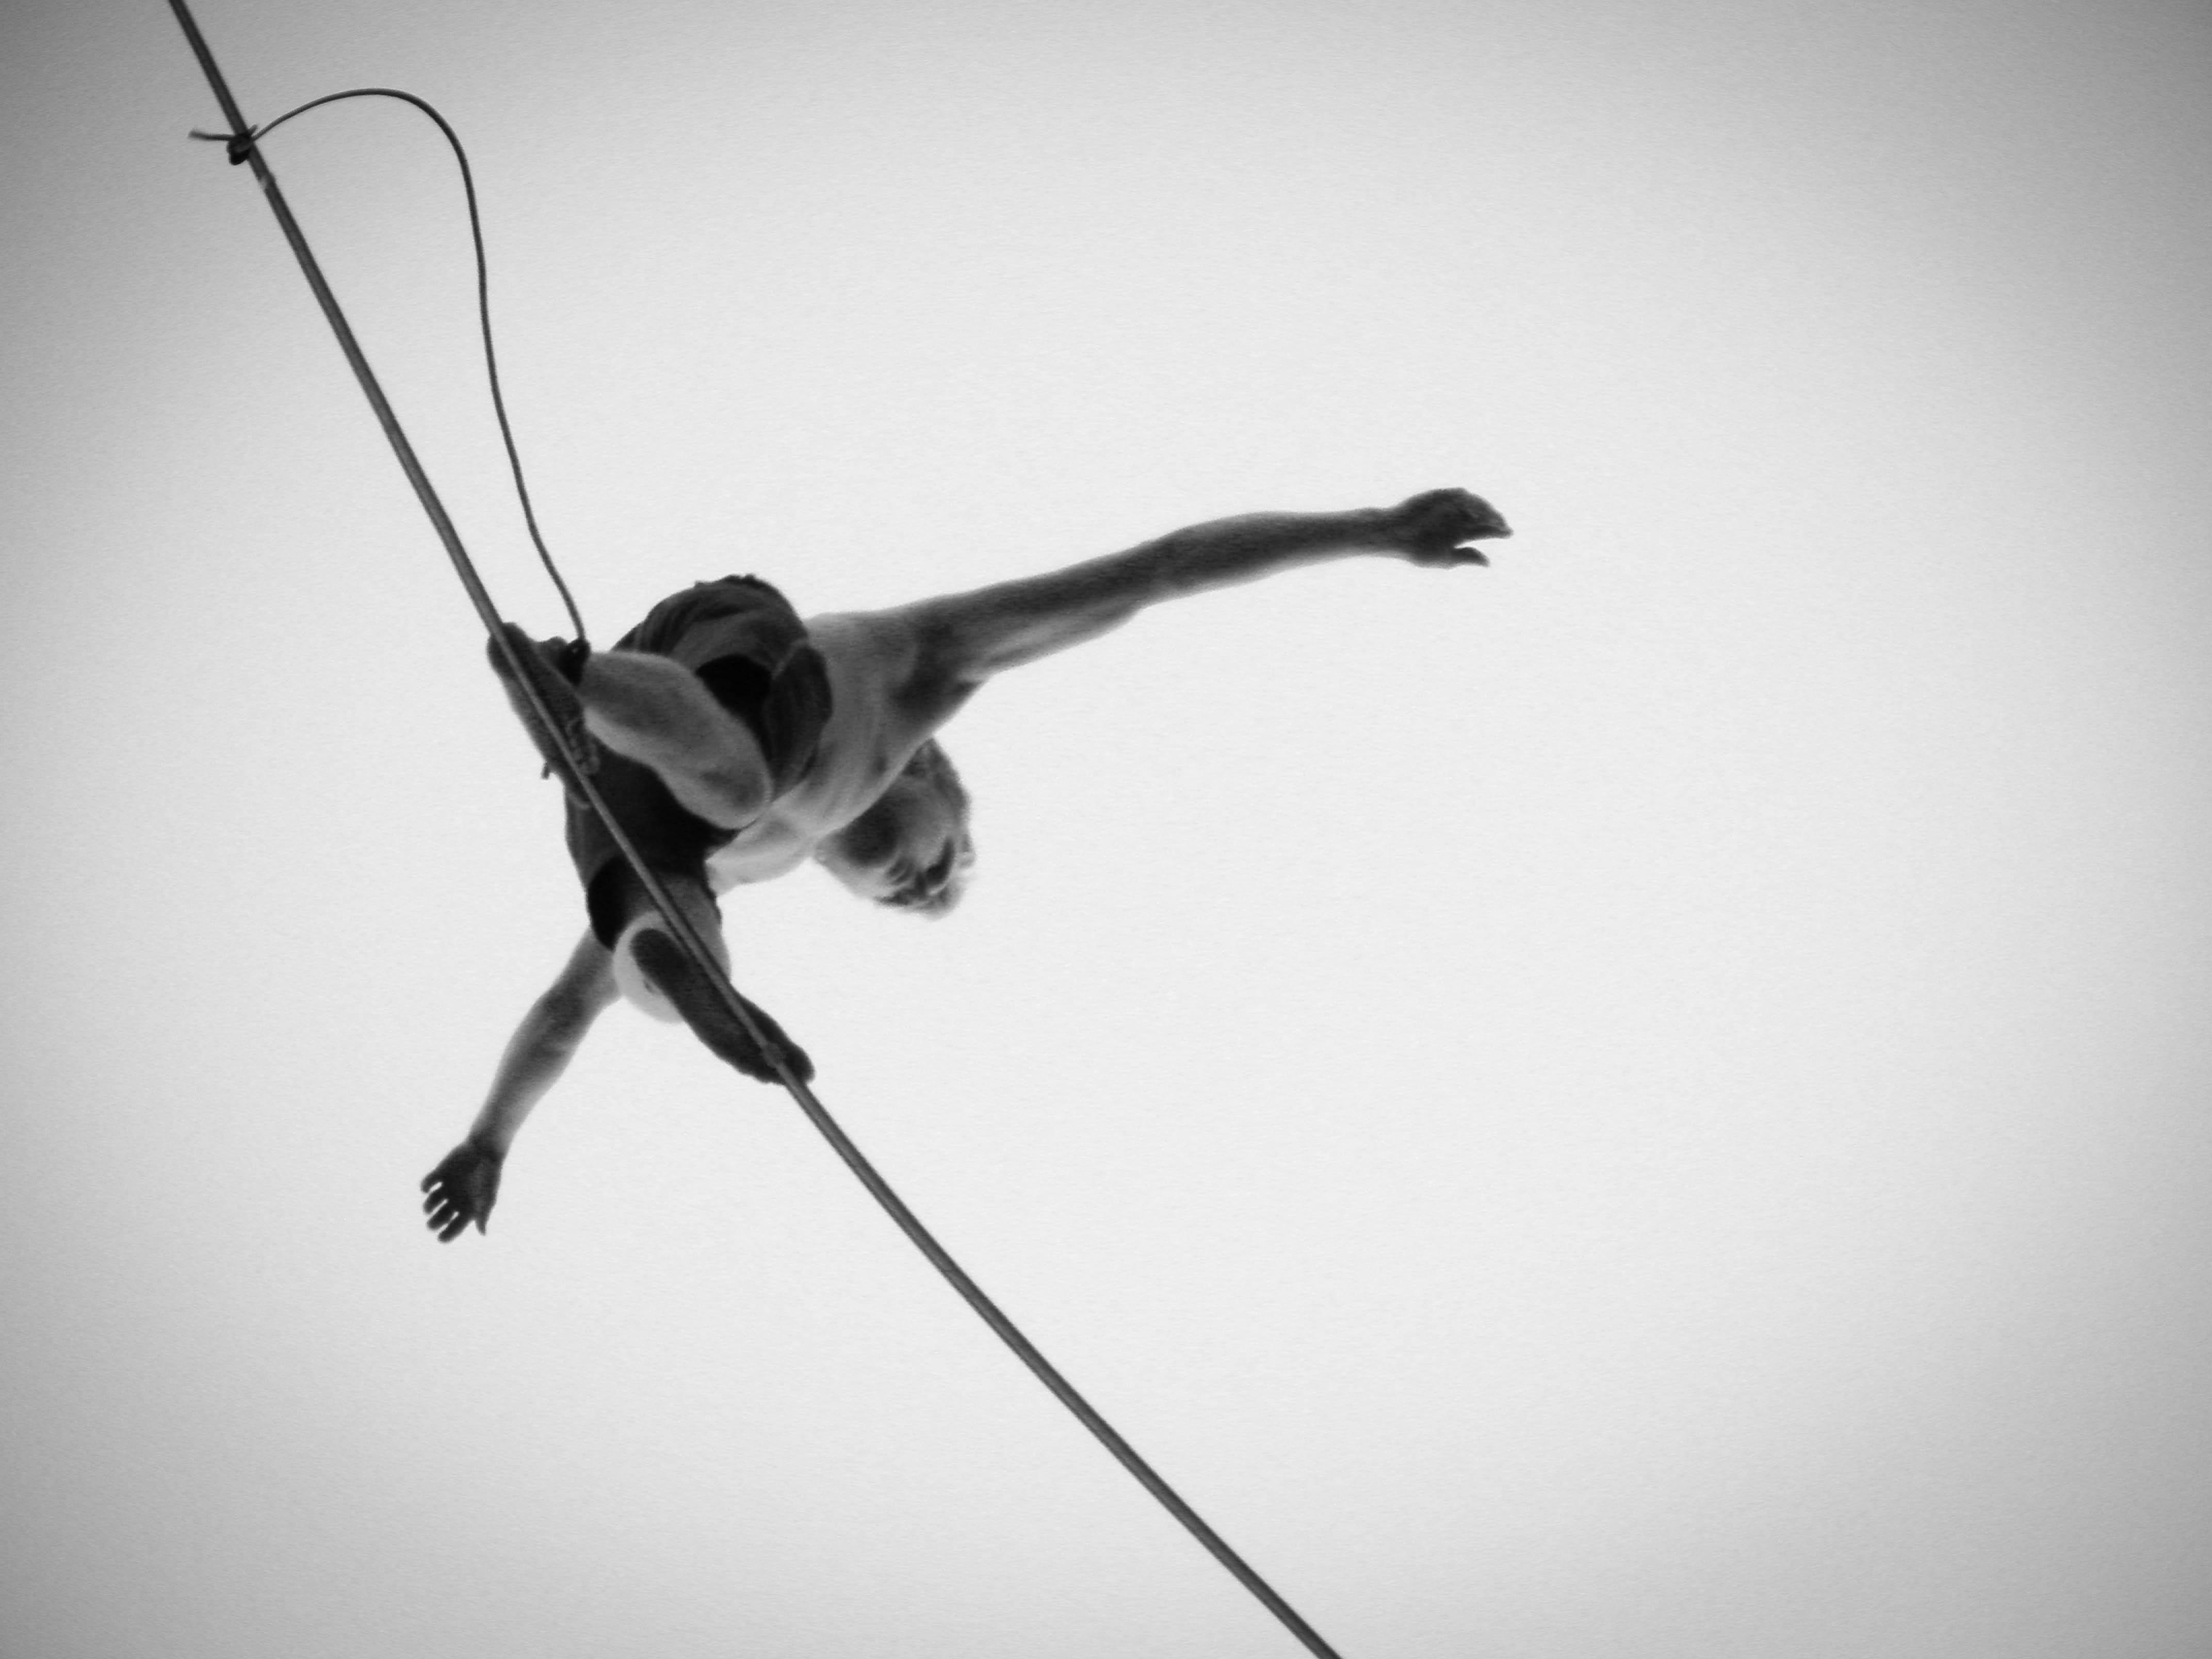 Black and white photo, in bug's eye view, looking up at a person balancing on a tightrope.